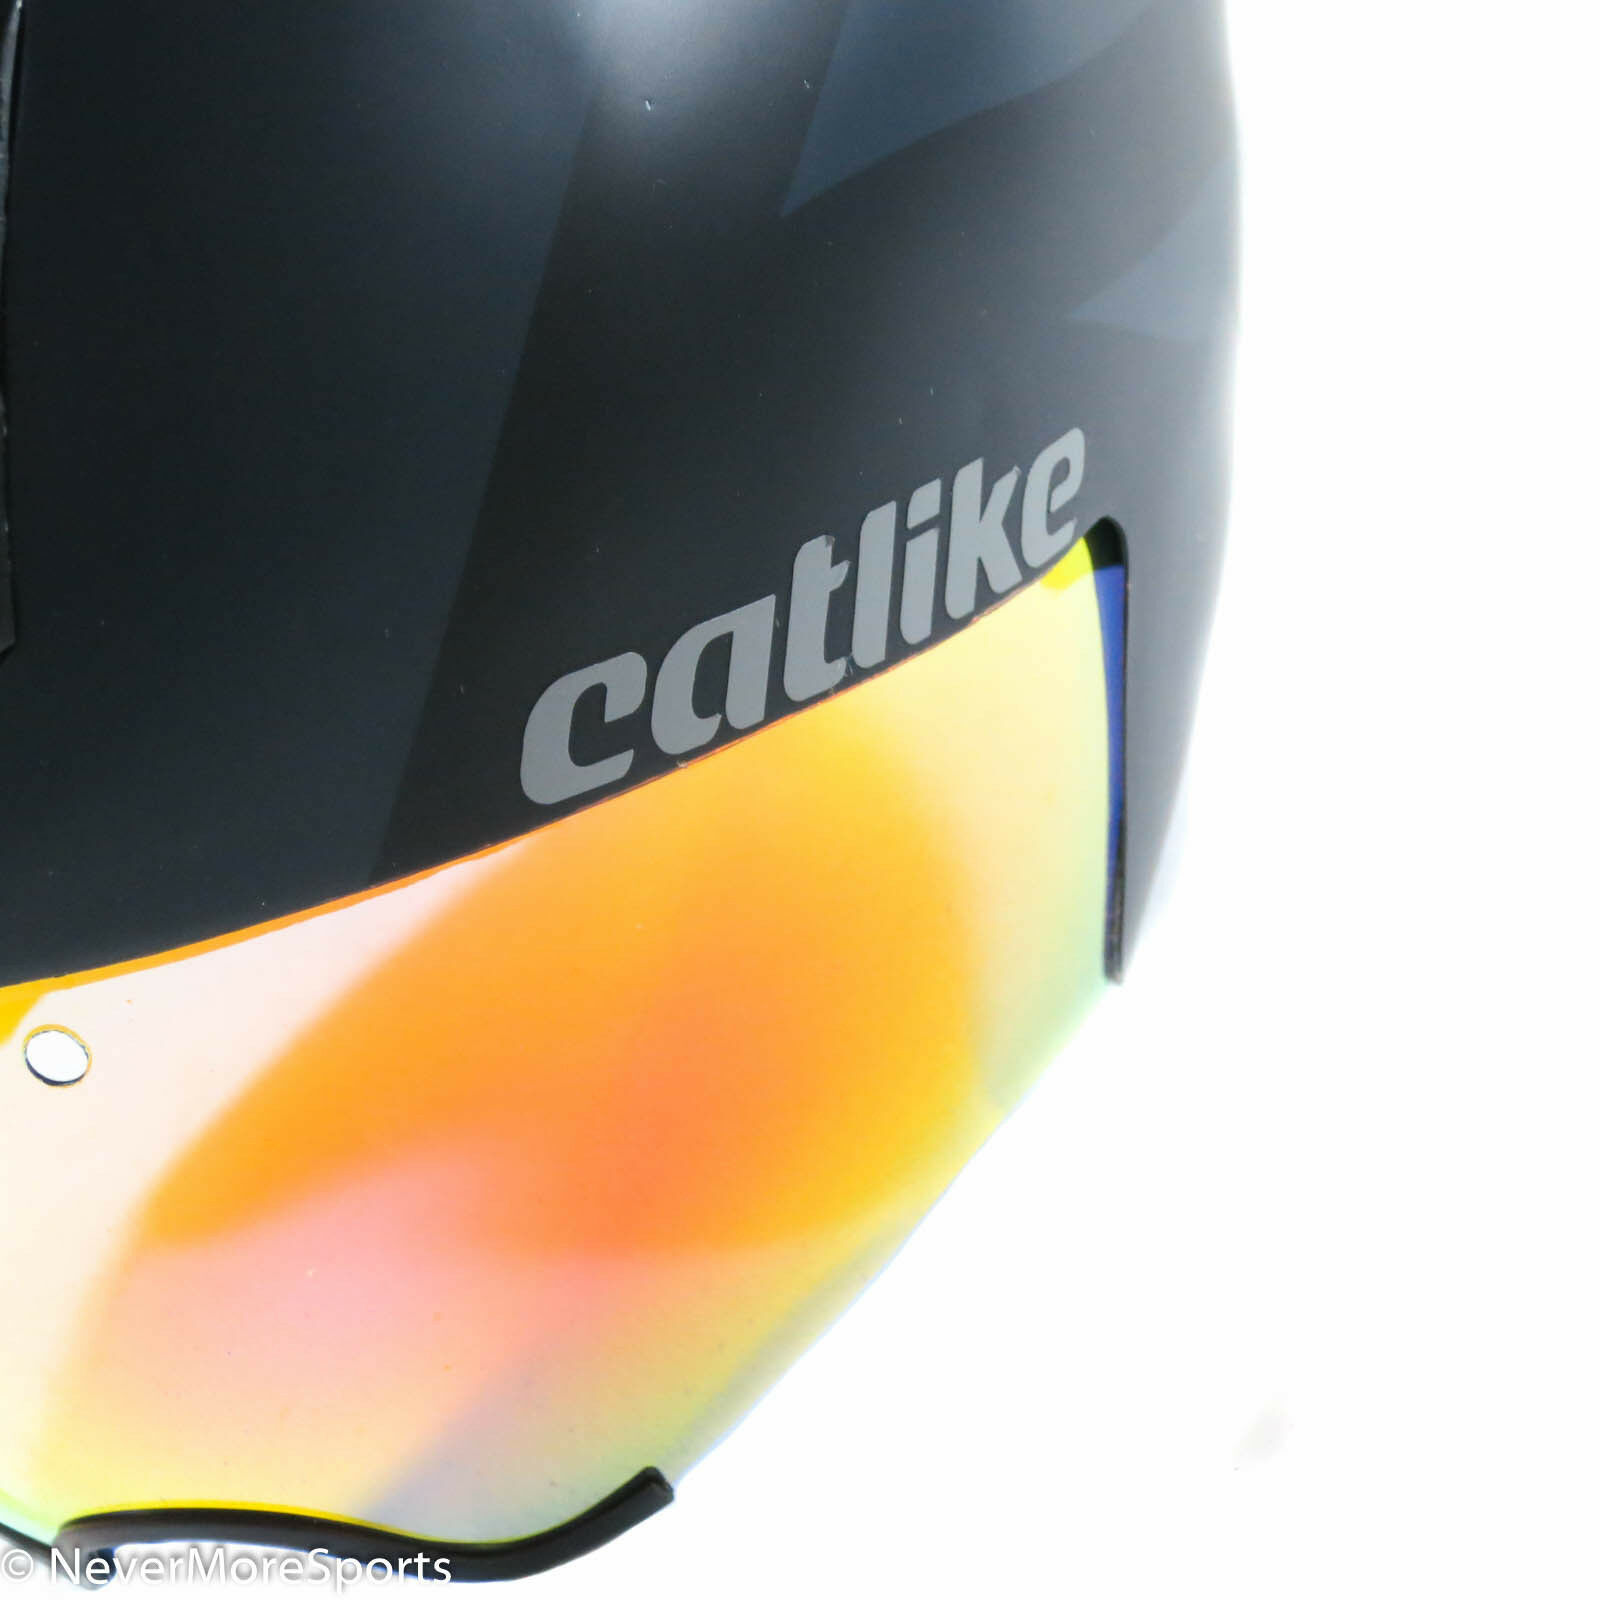 Catlike Chrono Aero WT TT Tri Helmet Med Large  57-60cm BLK GRY 2130011MDLGVR  there are more brands of high-quality goods